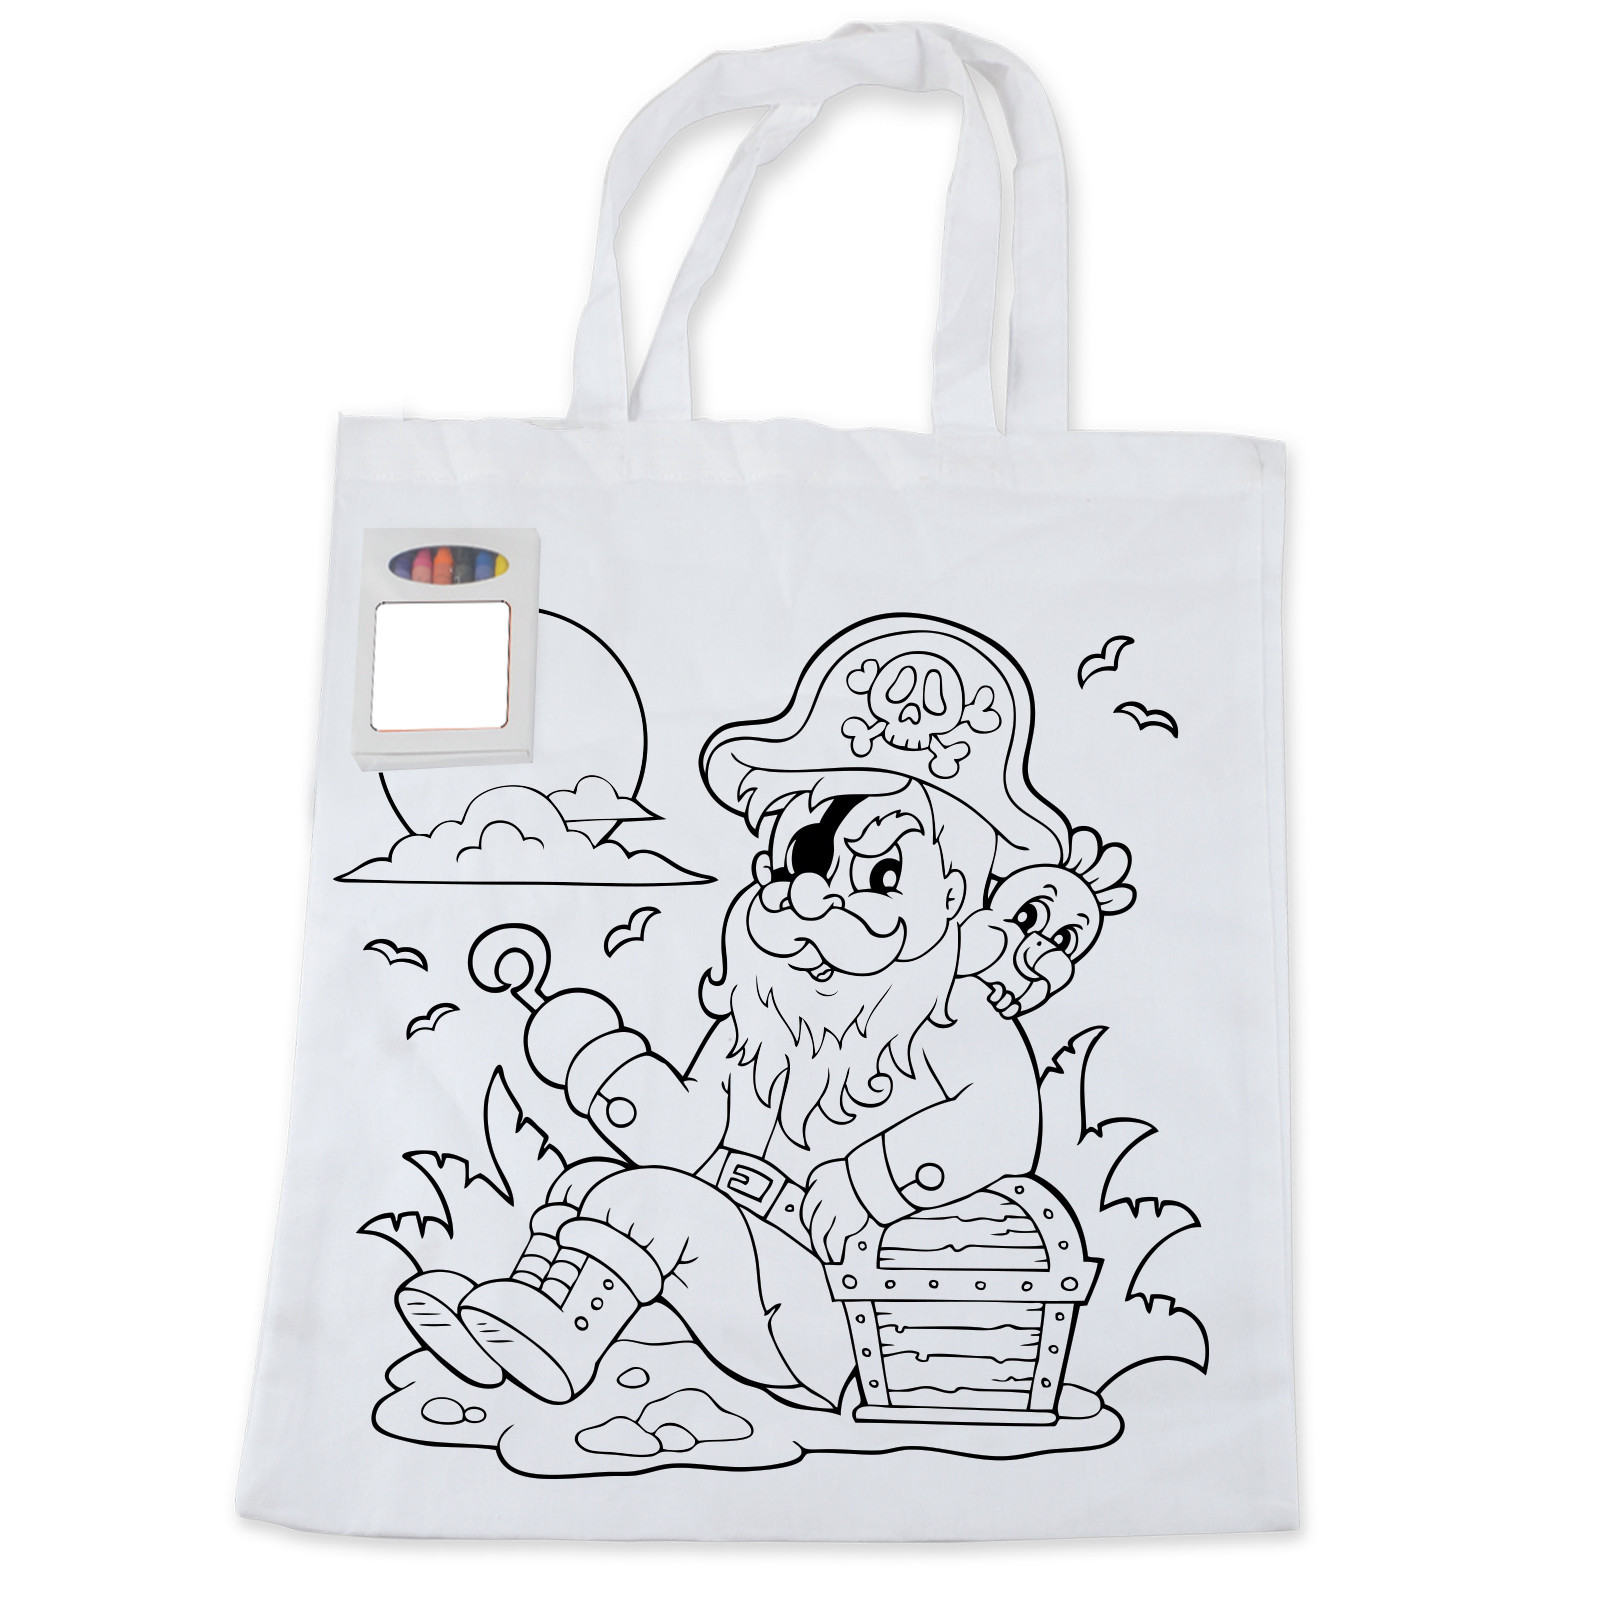 Colouring in bag - Colouring In Short Handle Tote Bag With Crayons Paddywack Promotional Products